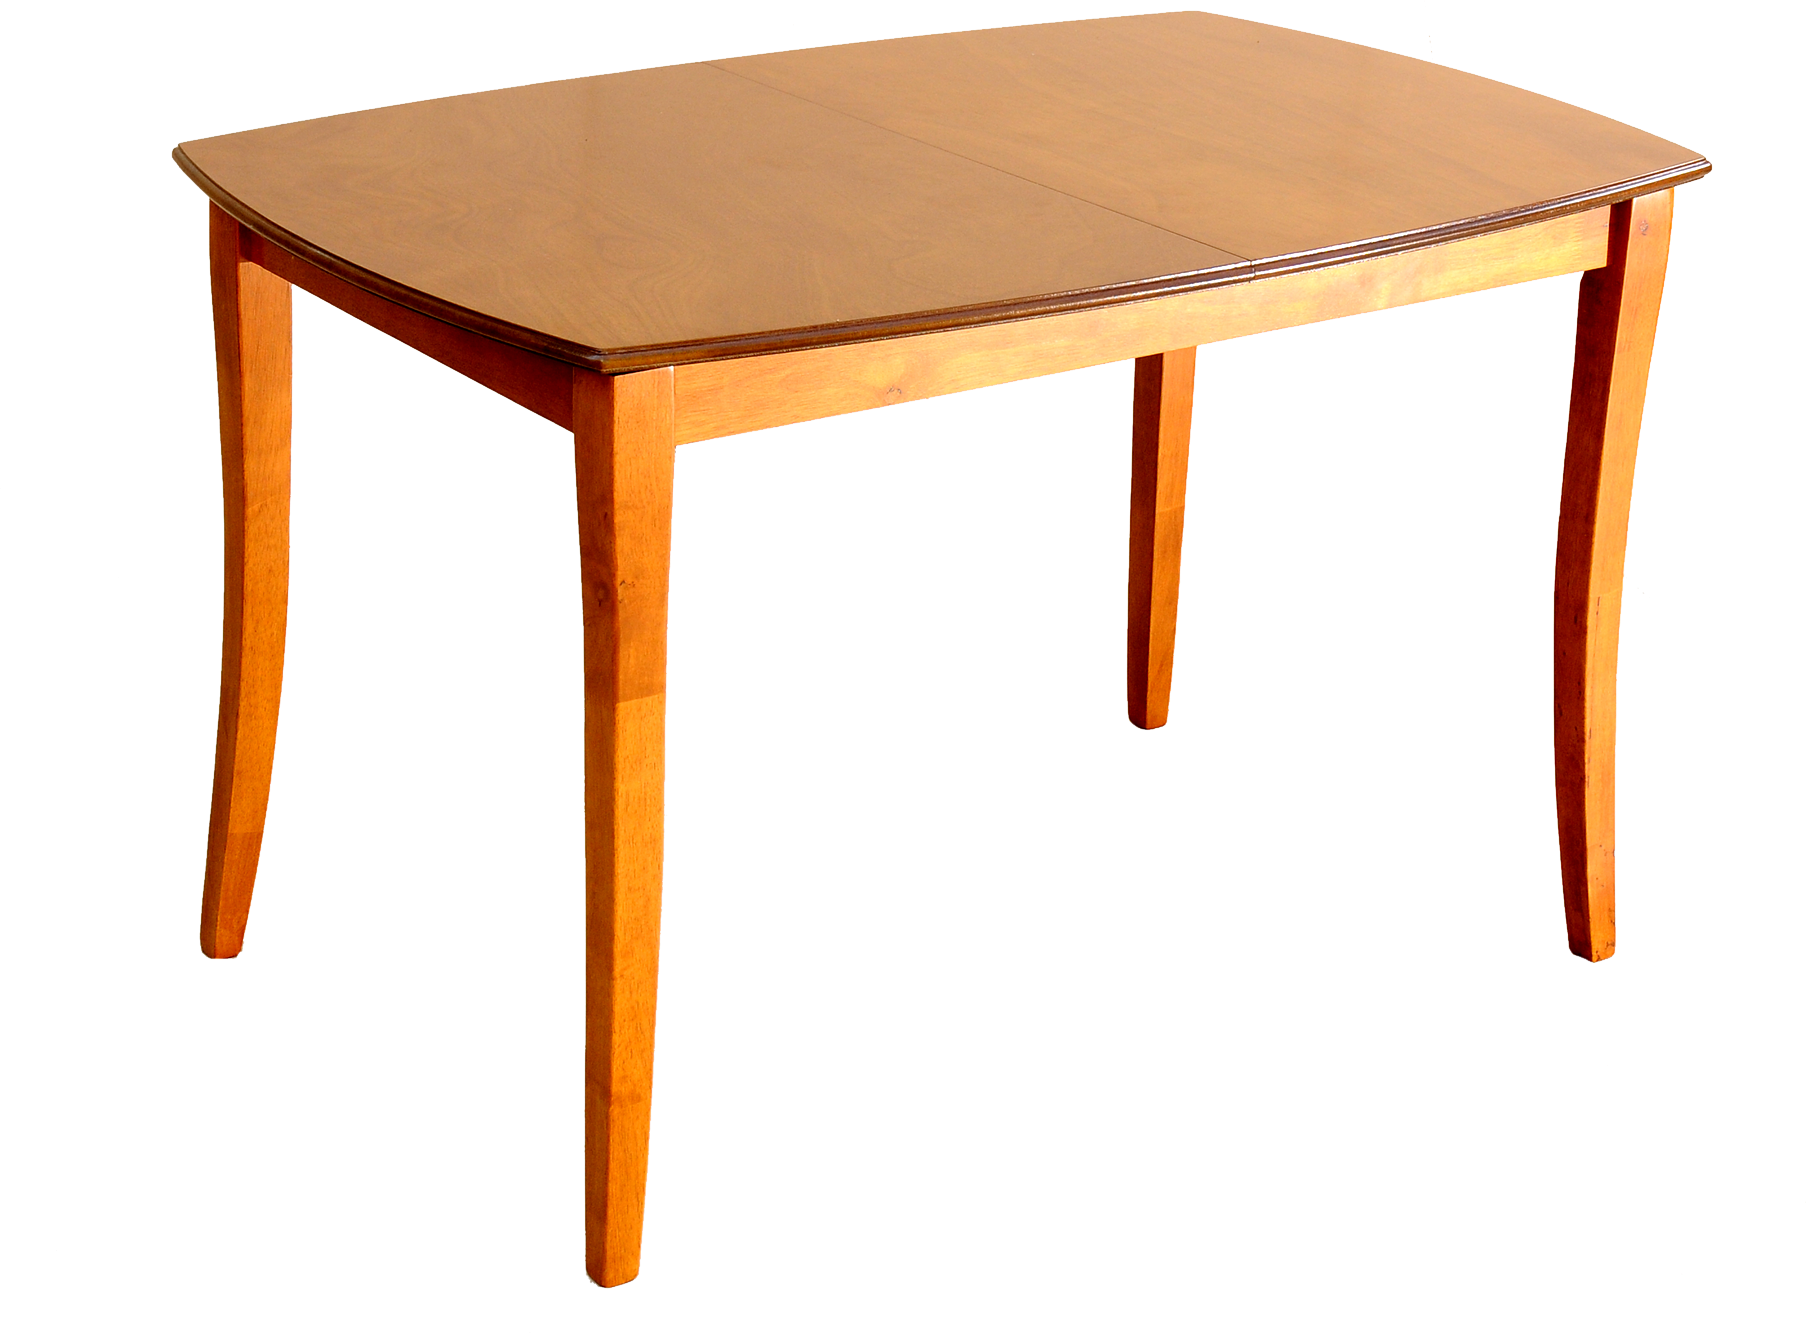 Clipart table old table.  ideas art of